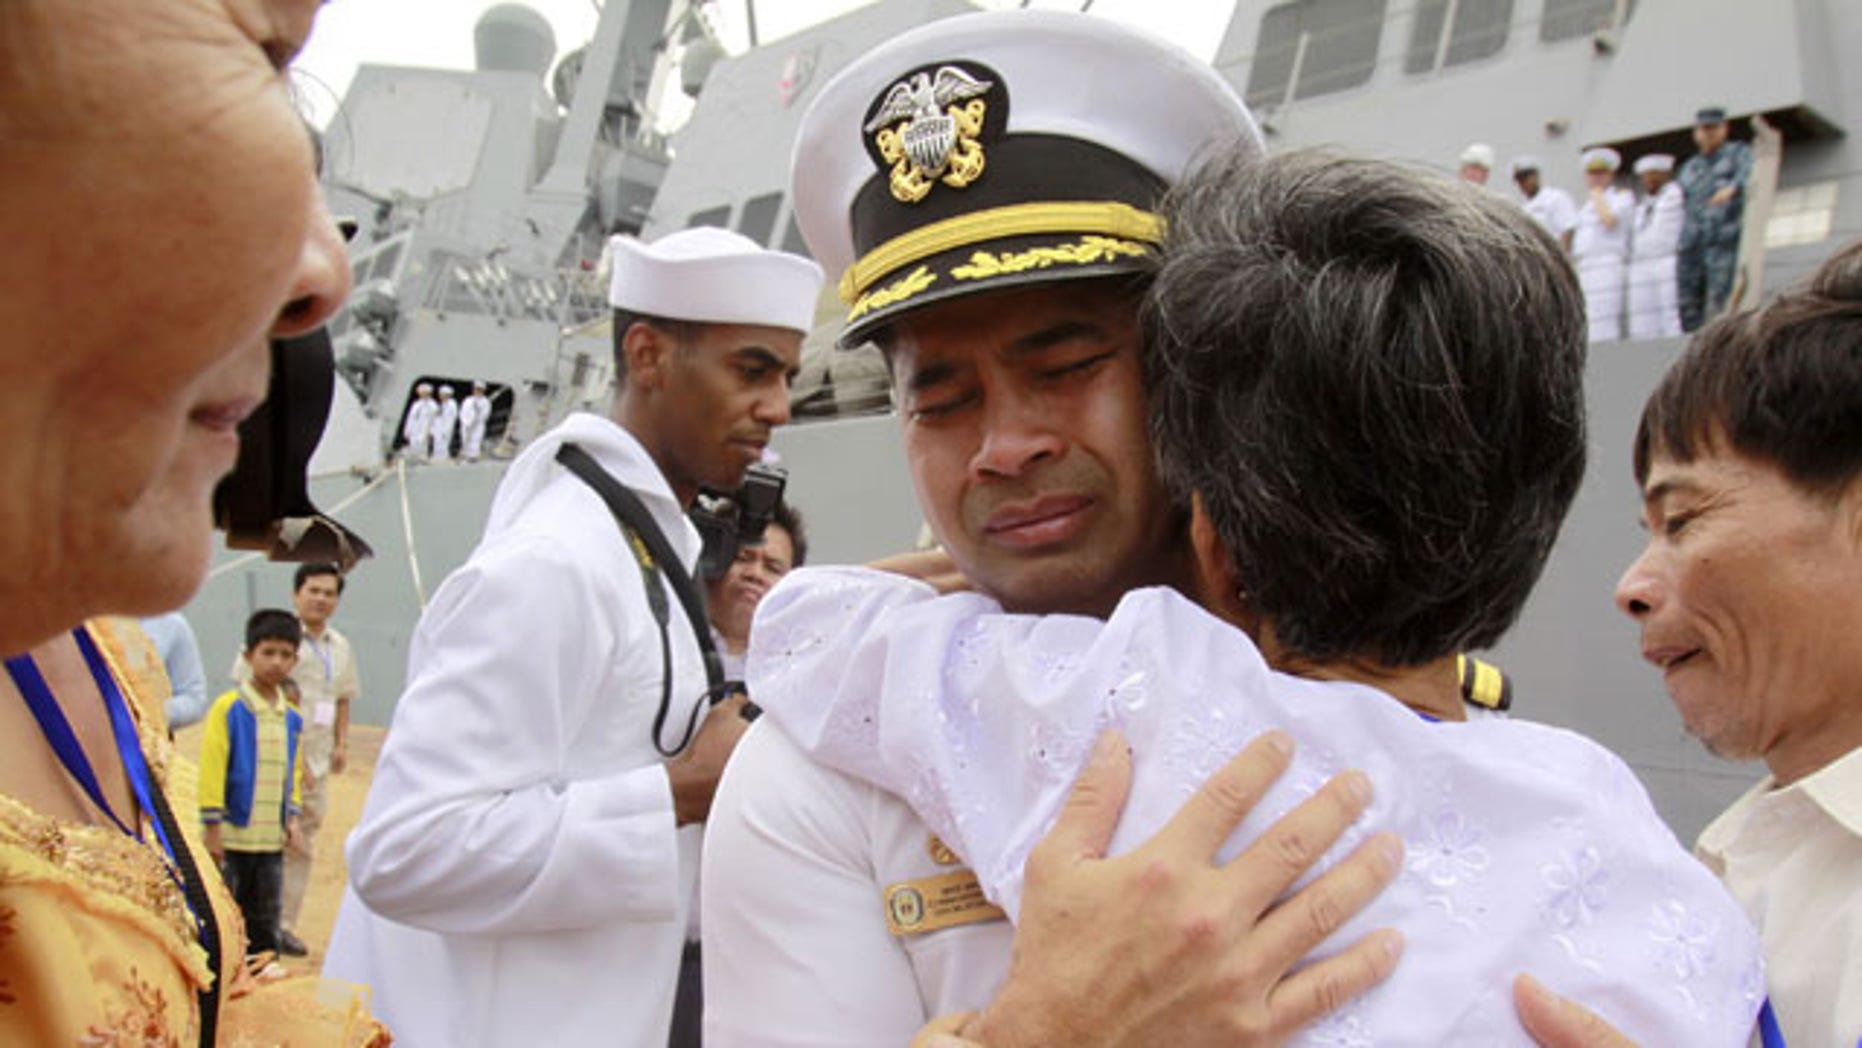 """December 3, 2010: U.S. navy officer Michael """"Vannak Khem"""" Misiewicz becomes emotional as he embraces his aunt Samrith Sokha, 72, at Cambodian coastal international see port of Sihanoukville, Cambodia. Misiewicz passed confidential information on ship routes to Malaysian businessman Leonard Francis' Singapore-based company, Glenn Defense Marine Asia Ltd., or GDMA, according to court documents. (AP)"""